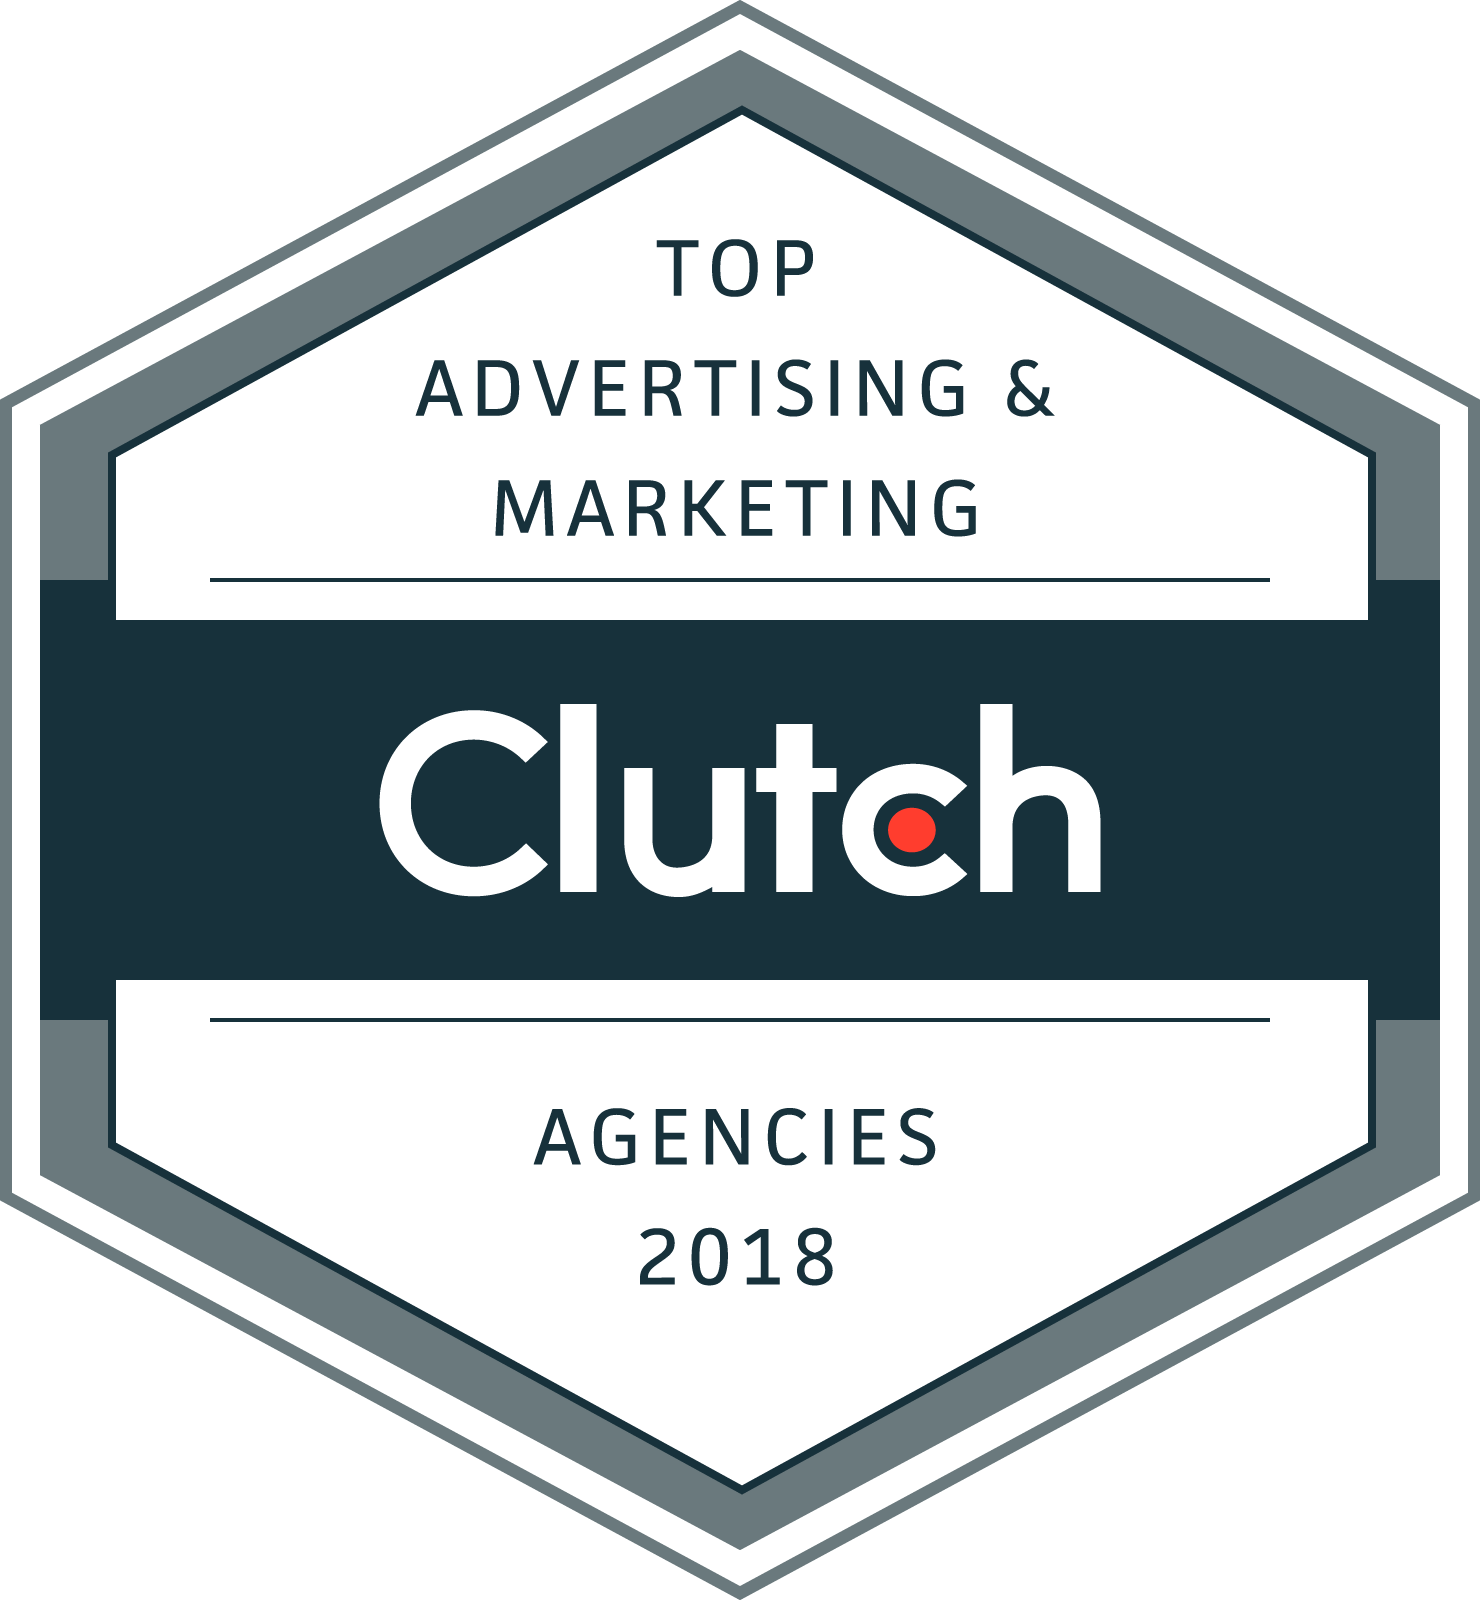 Clutch Names CIRCA Top Social Media and Advertising Company